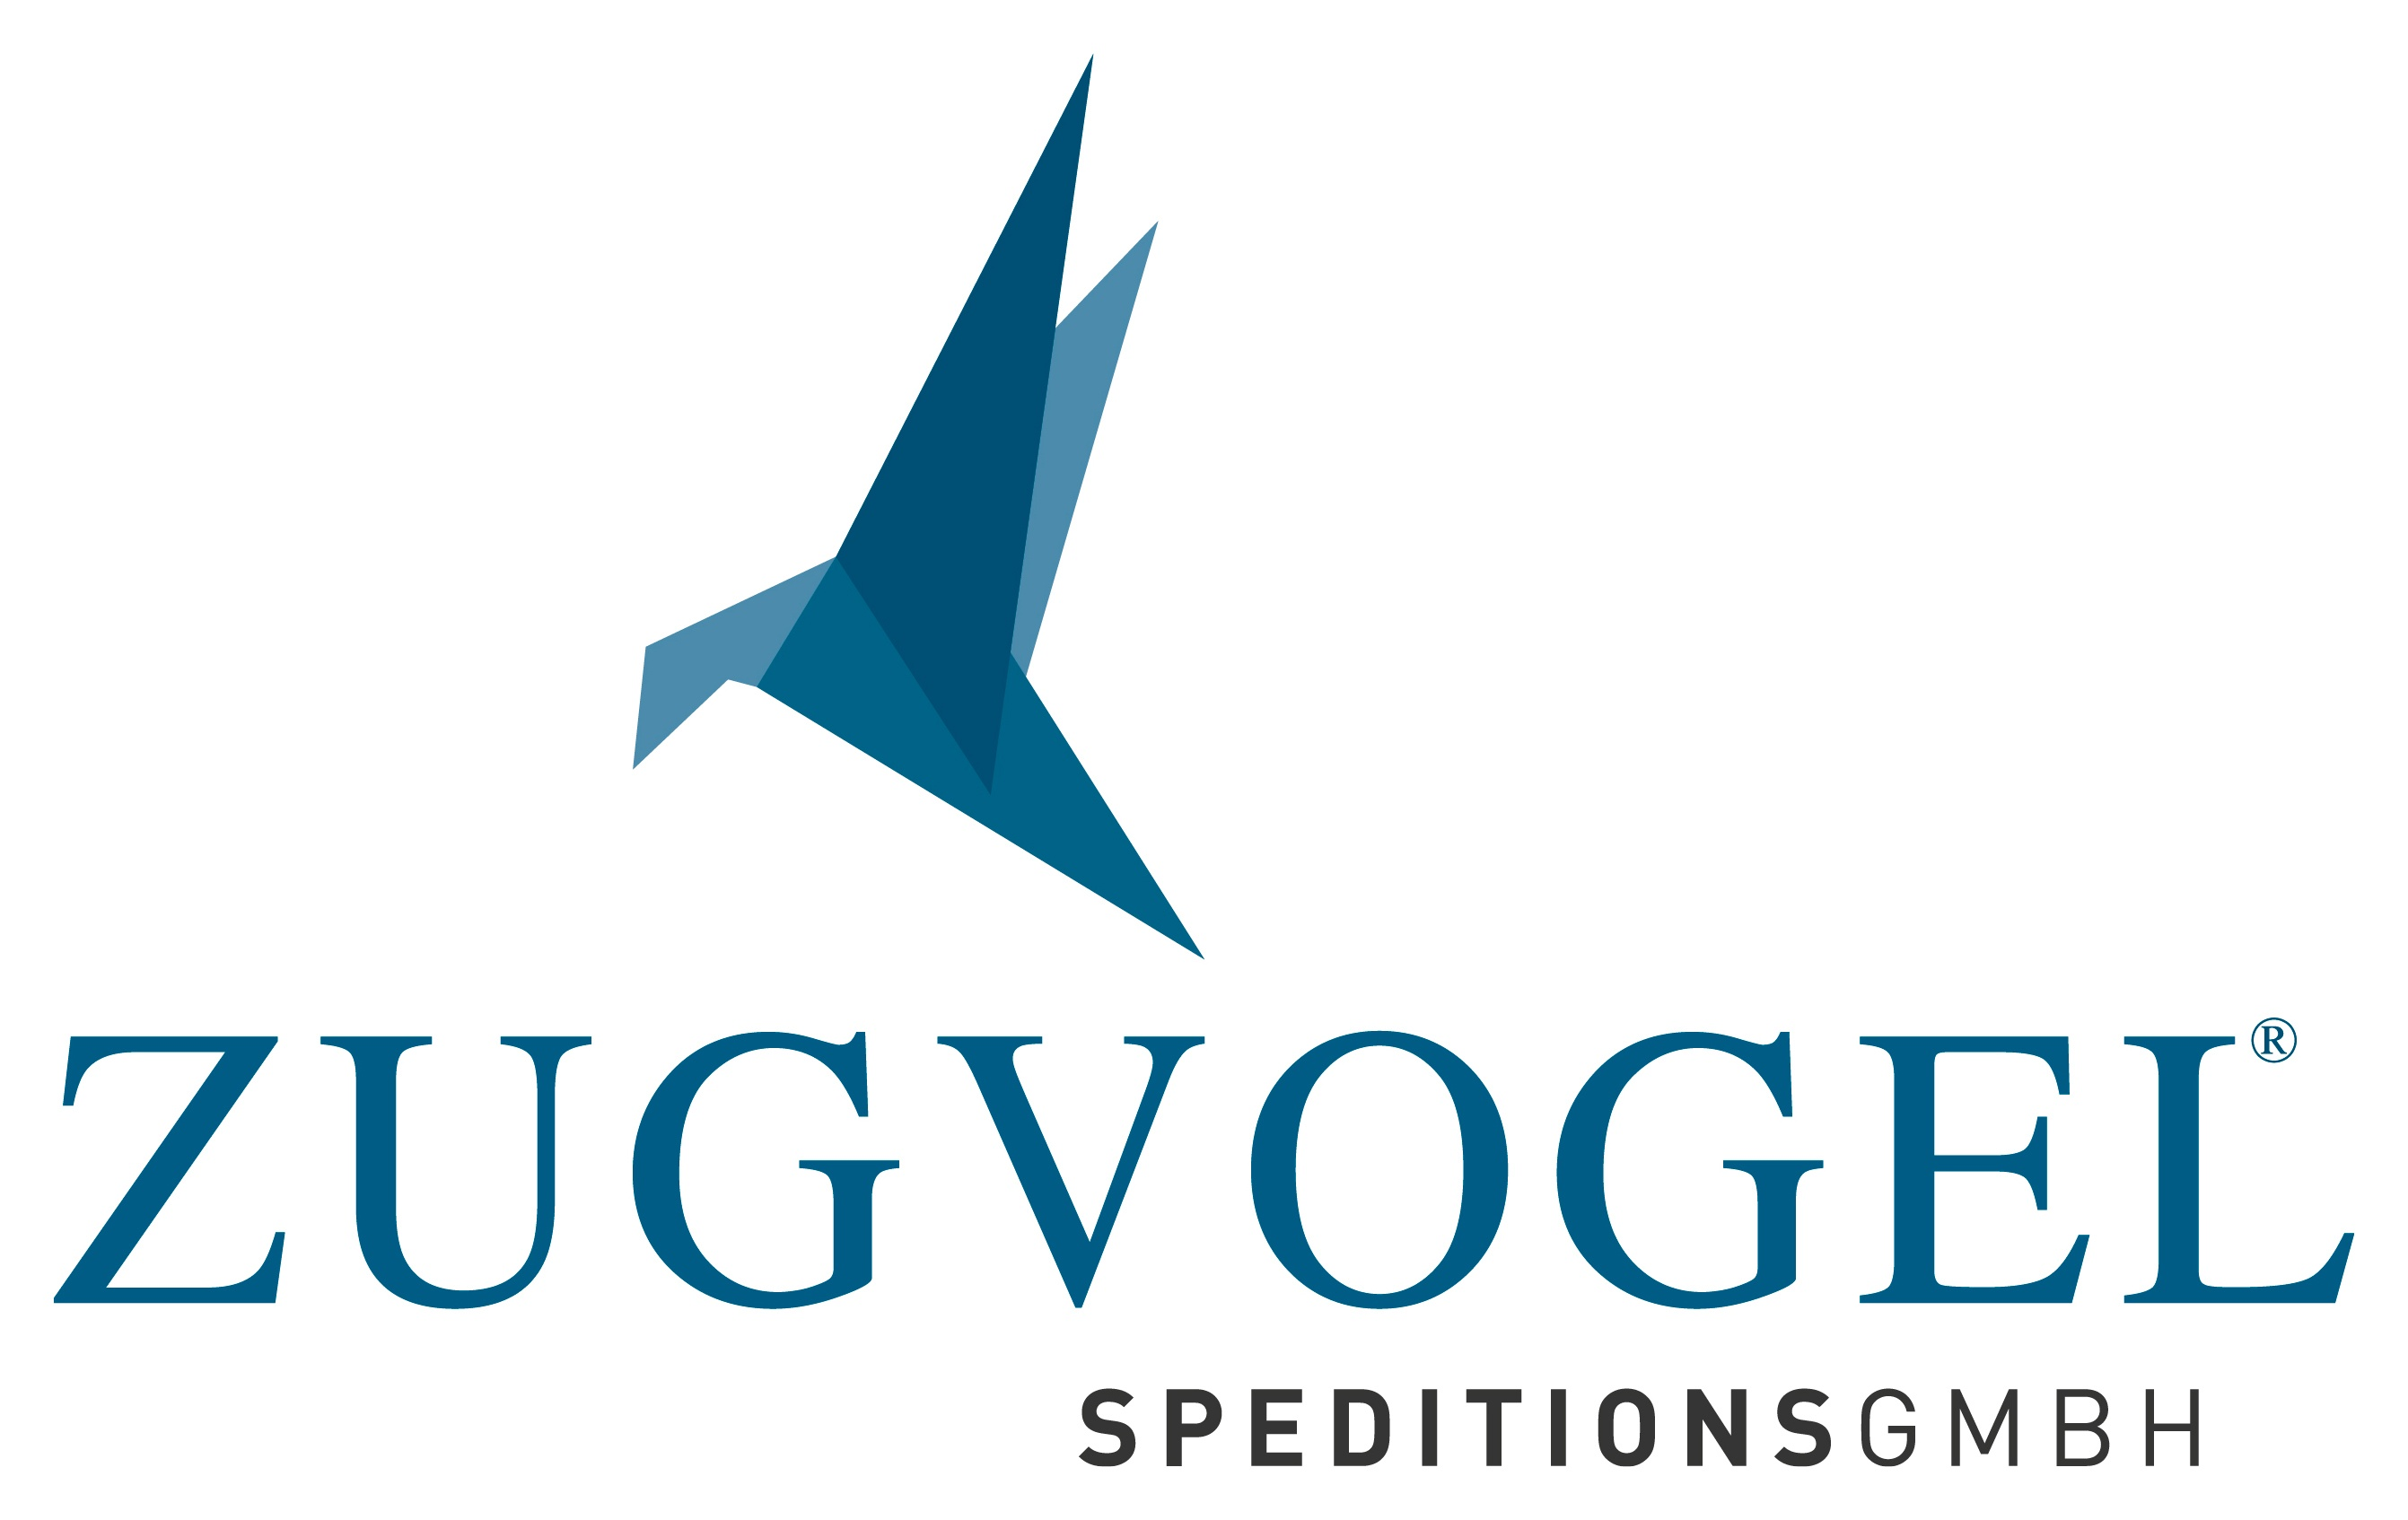 Zugvogel Speditions GmbH